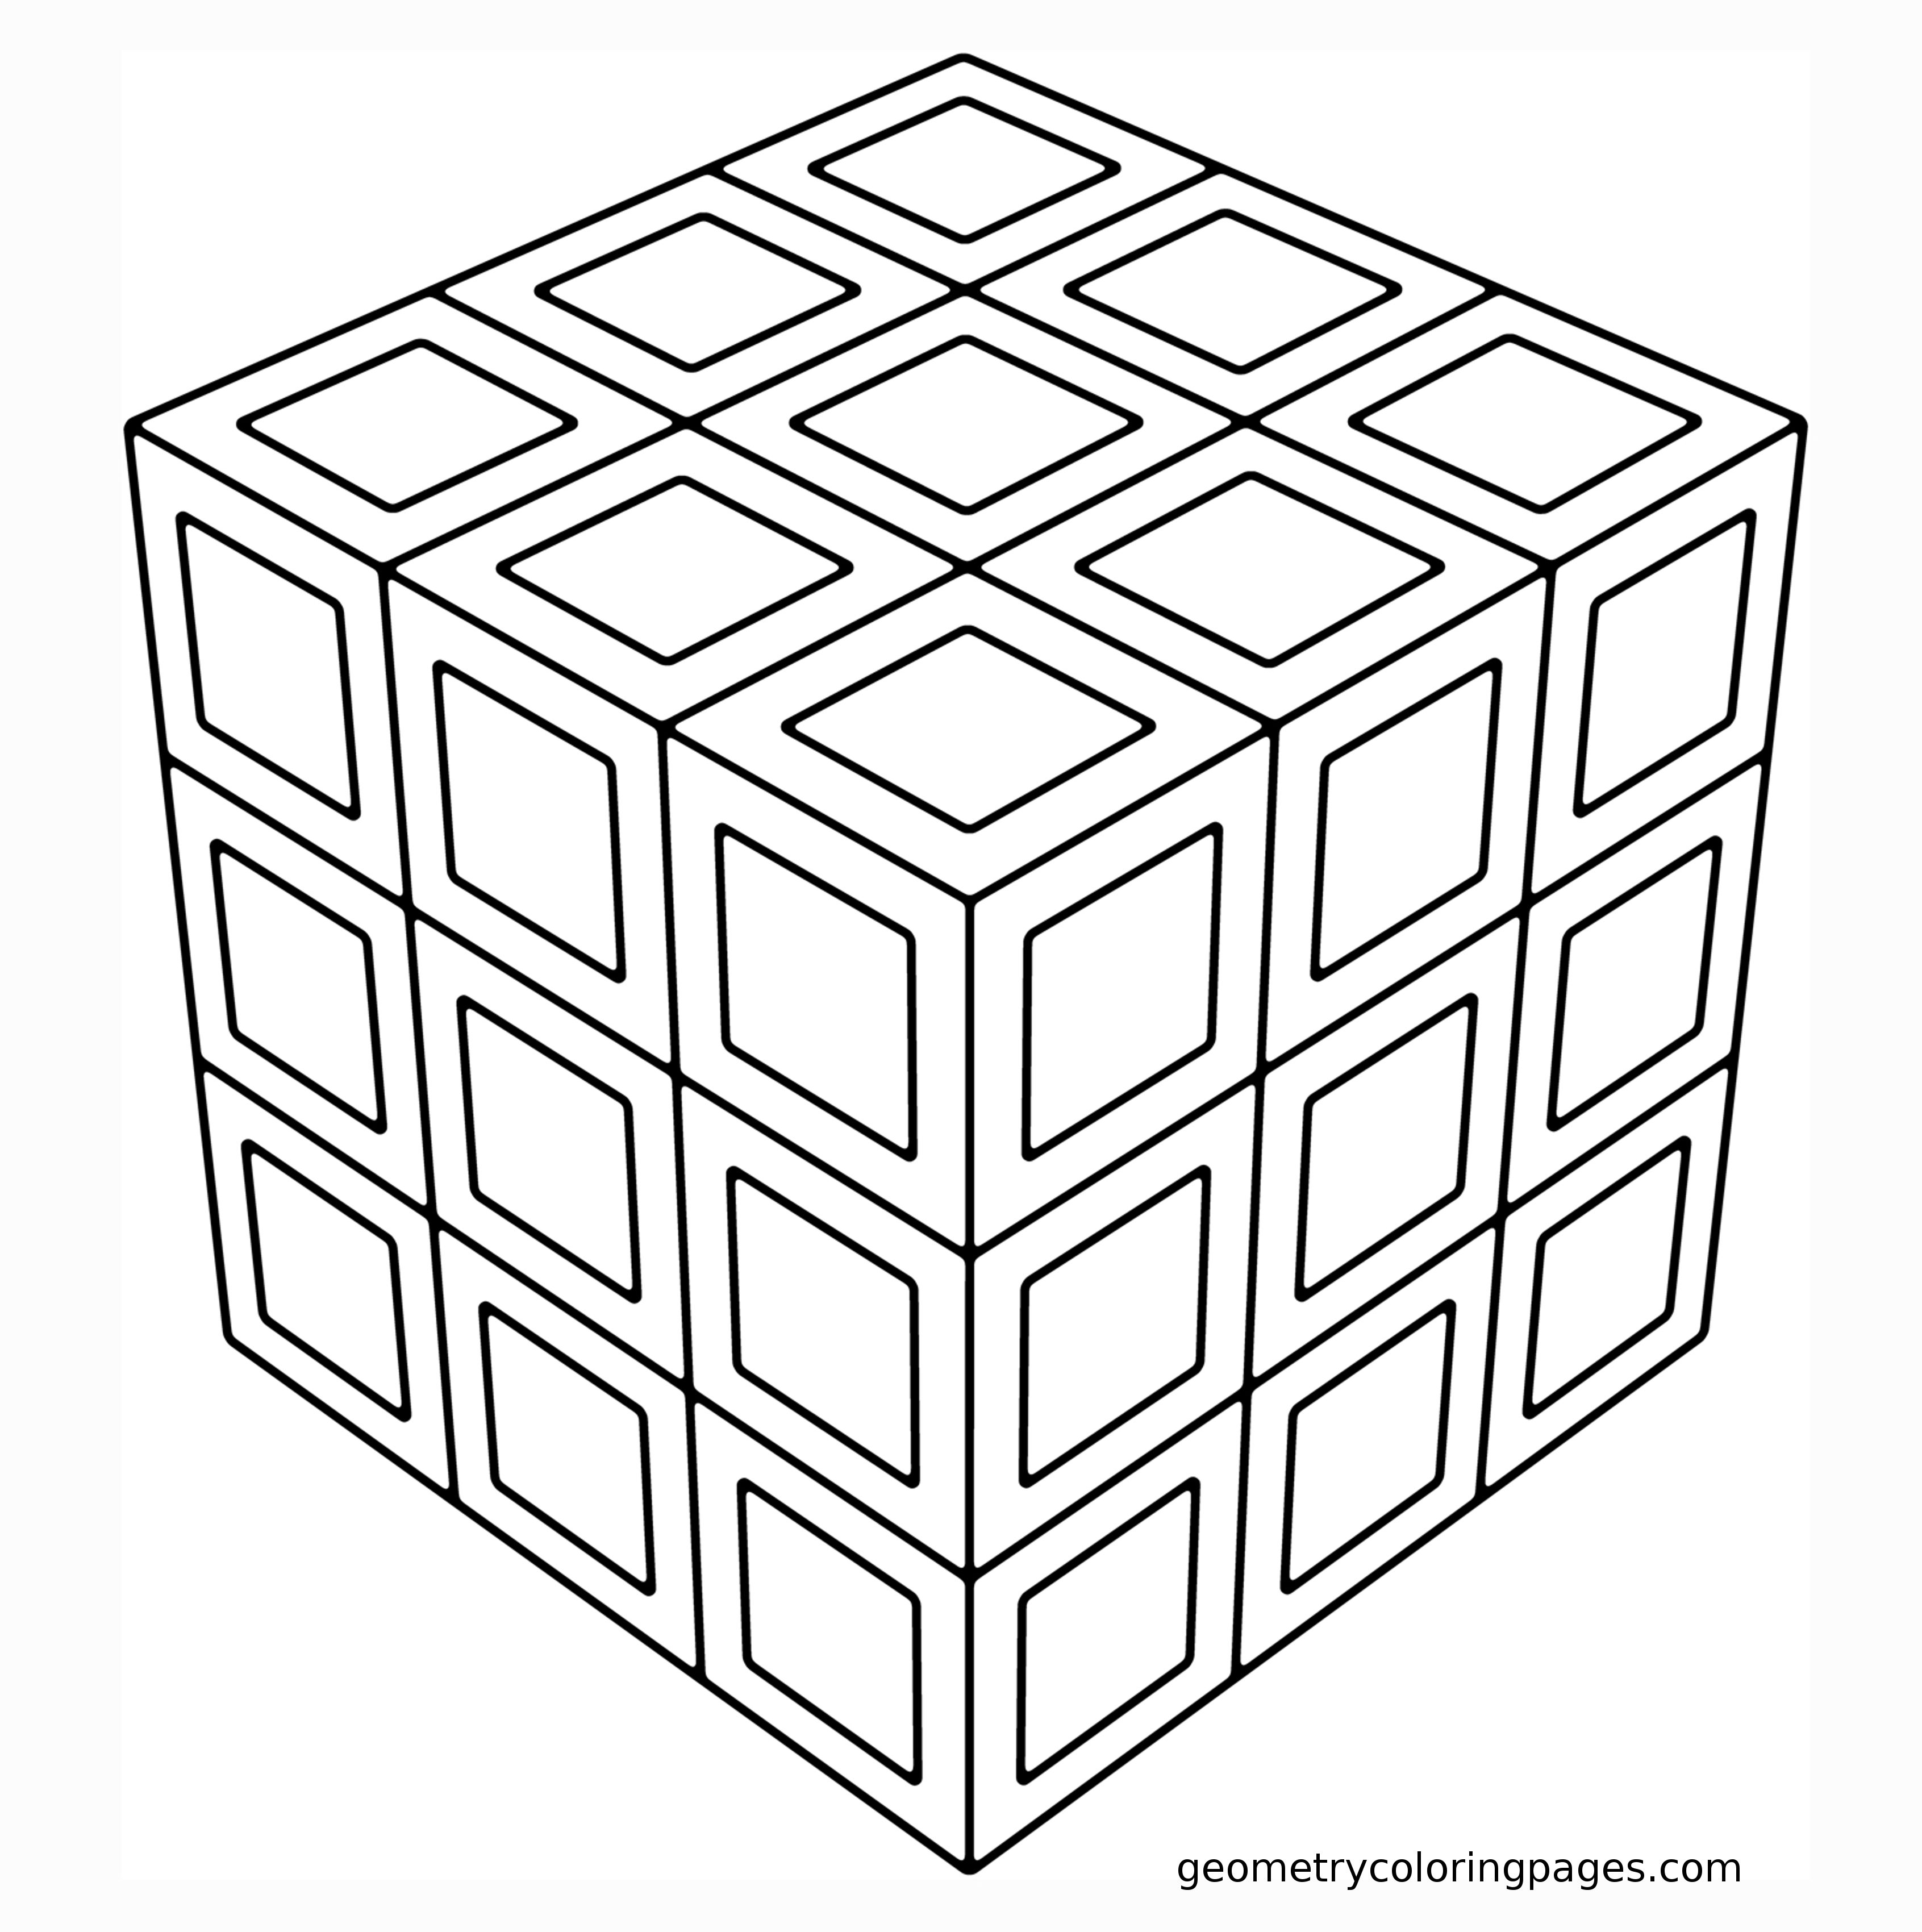 14 ide coloring-pages-geometric-simple-14 Best Coloring Pages